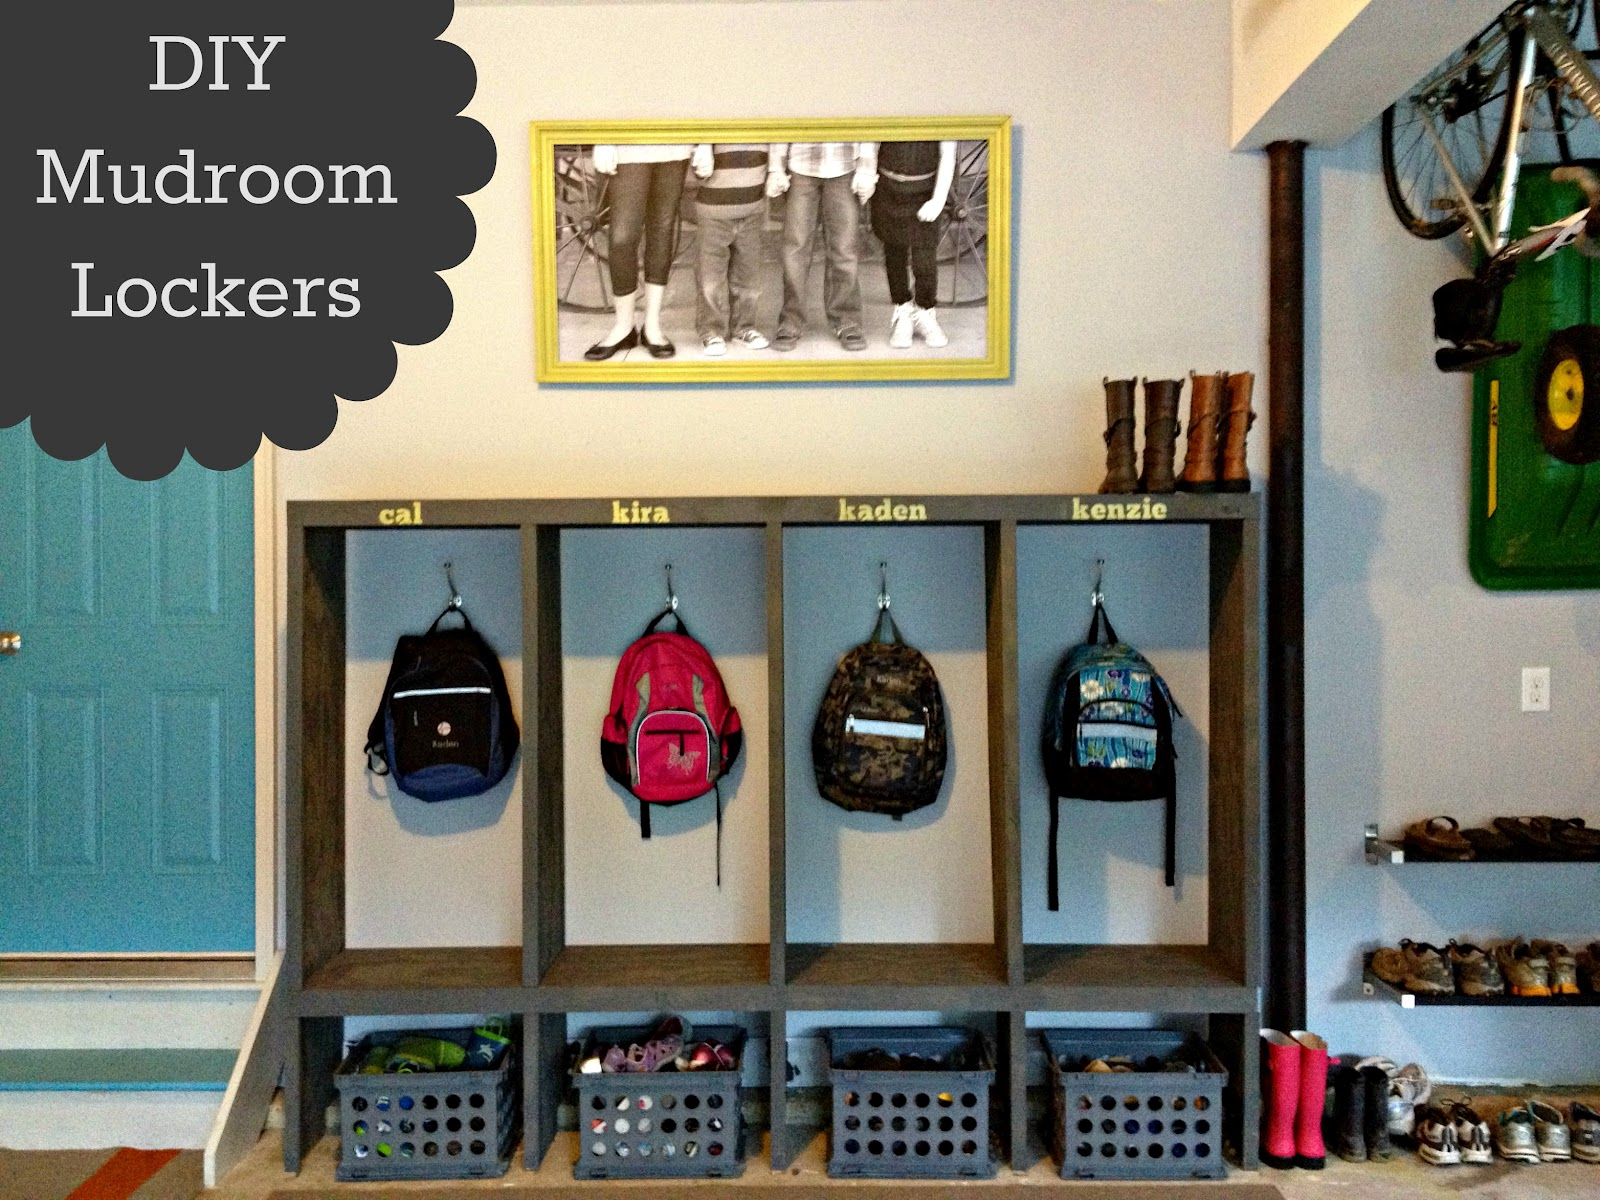 DIY Mudroom Lockers- Garage Mudroom Makeover